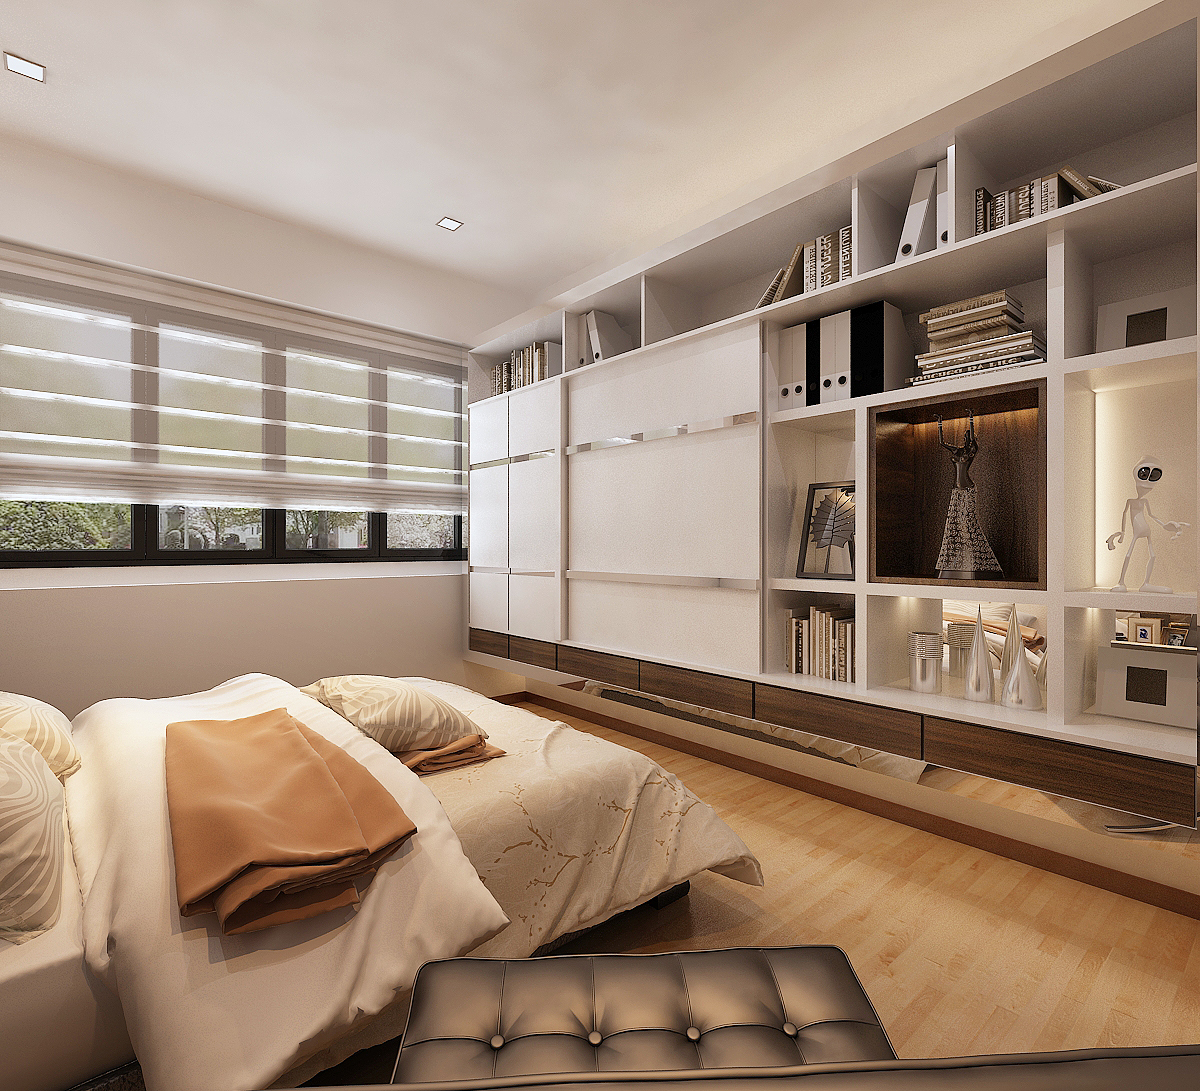 Eight design hipvan blog for Bedroom ideas hdb